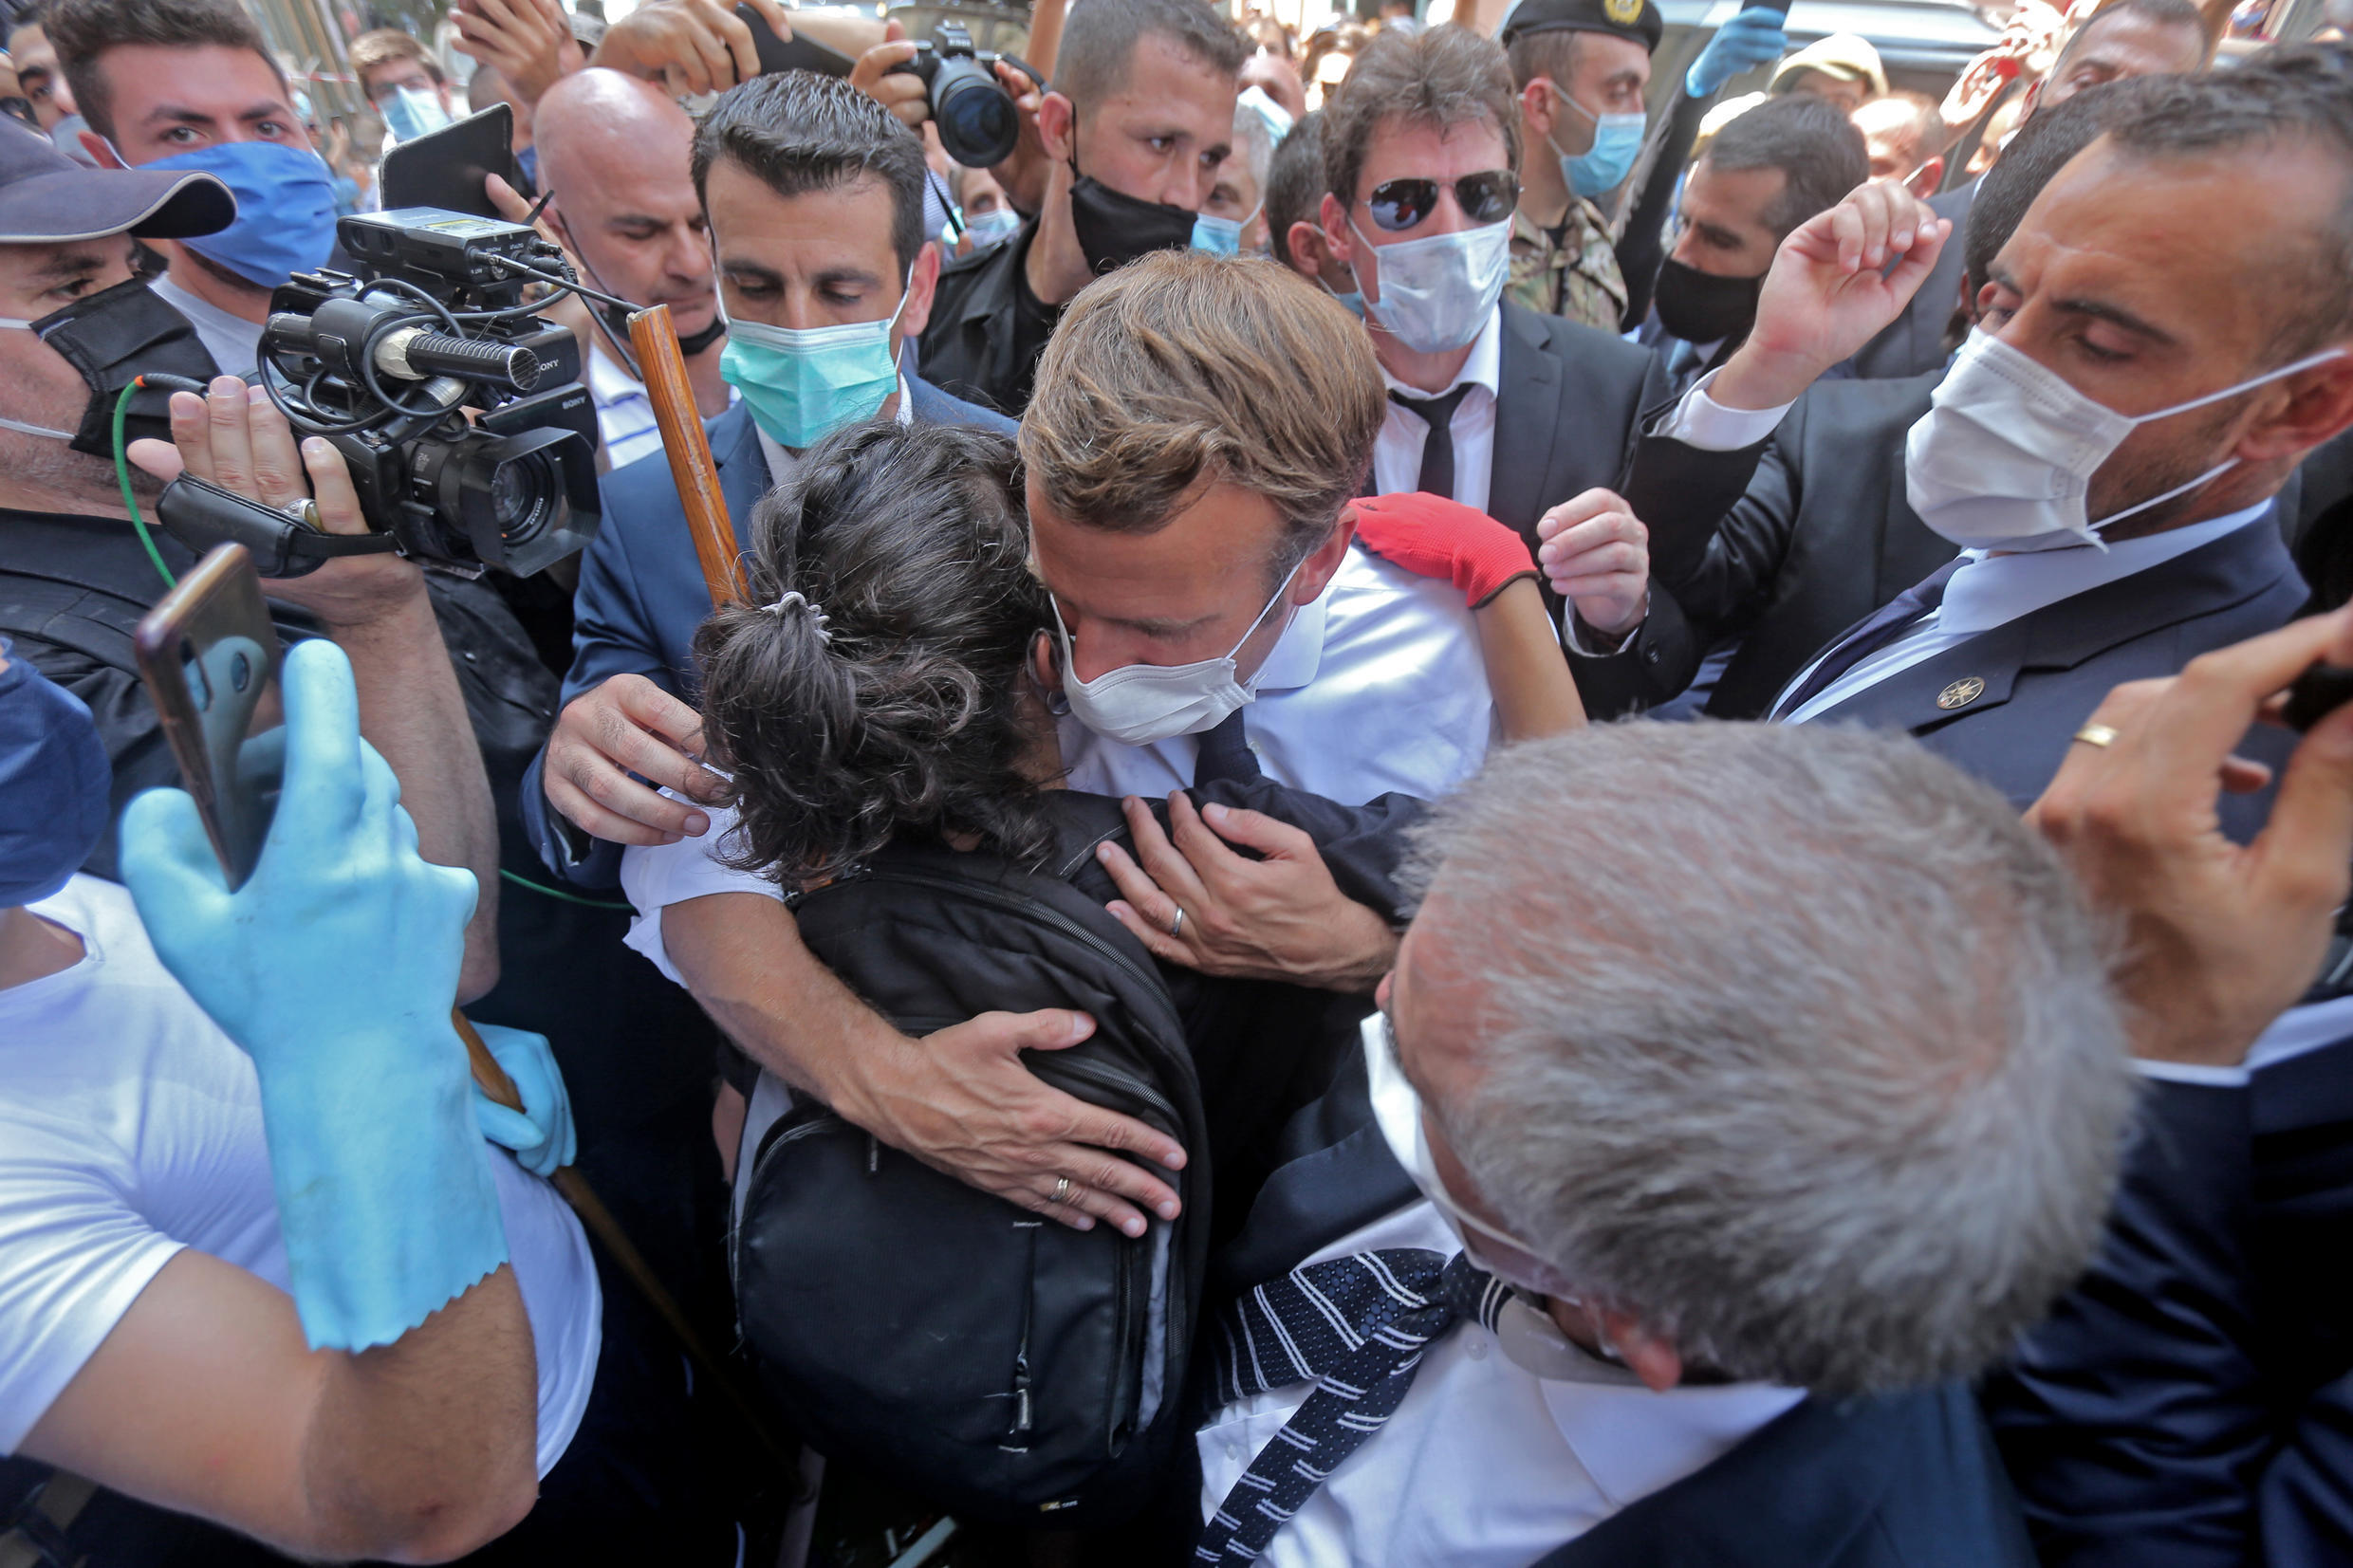 A Lebanese youth hugs French President Emmanuel Macron during his visit to the Gemmayzeh neighborhood of Beirut, which has suffered extensive damage due to Tuesday's massive explosion in the Lebanese capital, on August 6, 2020.